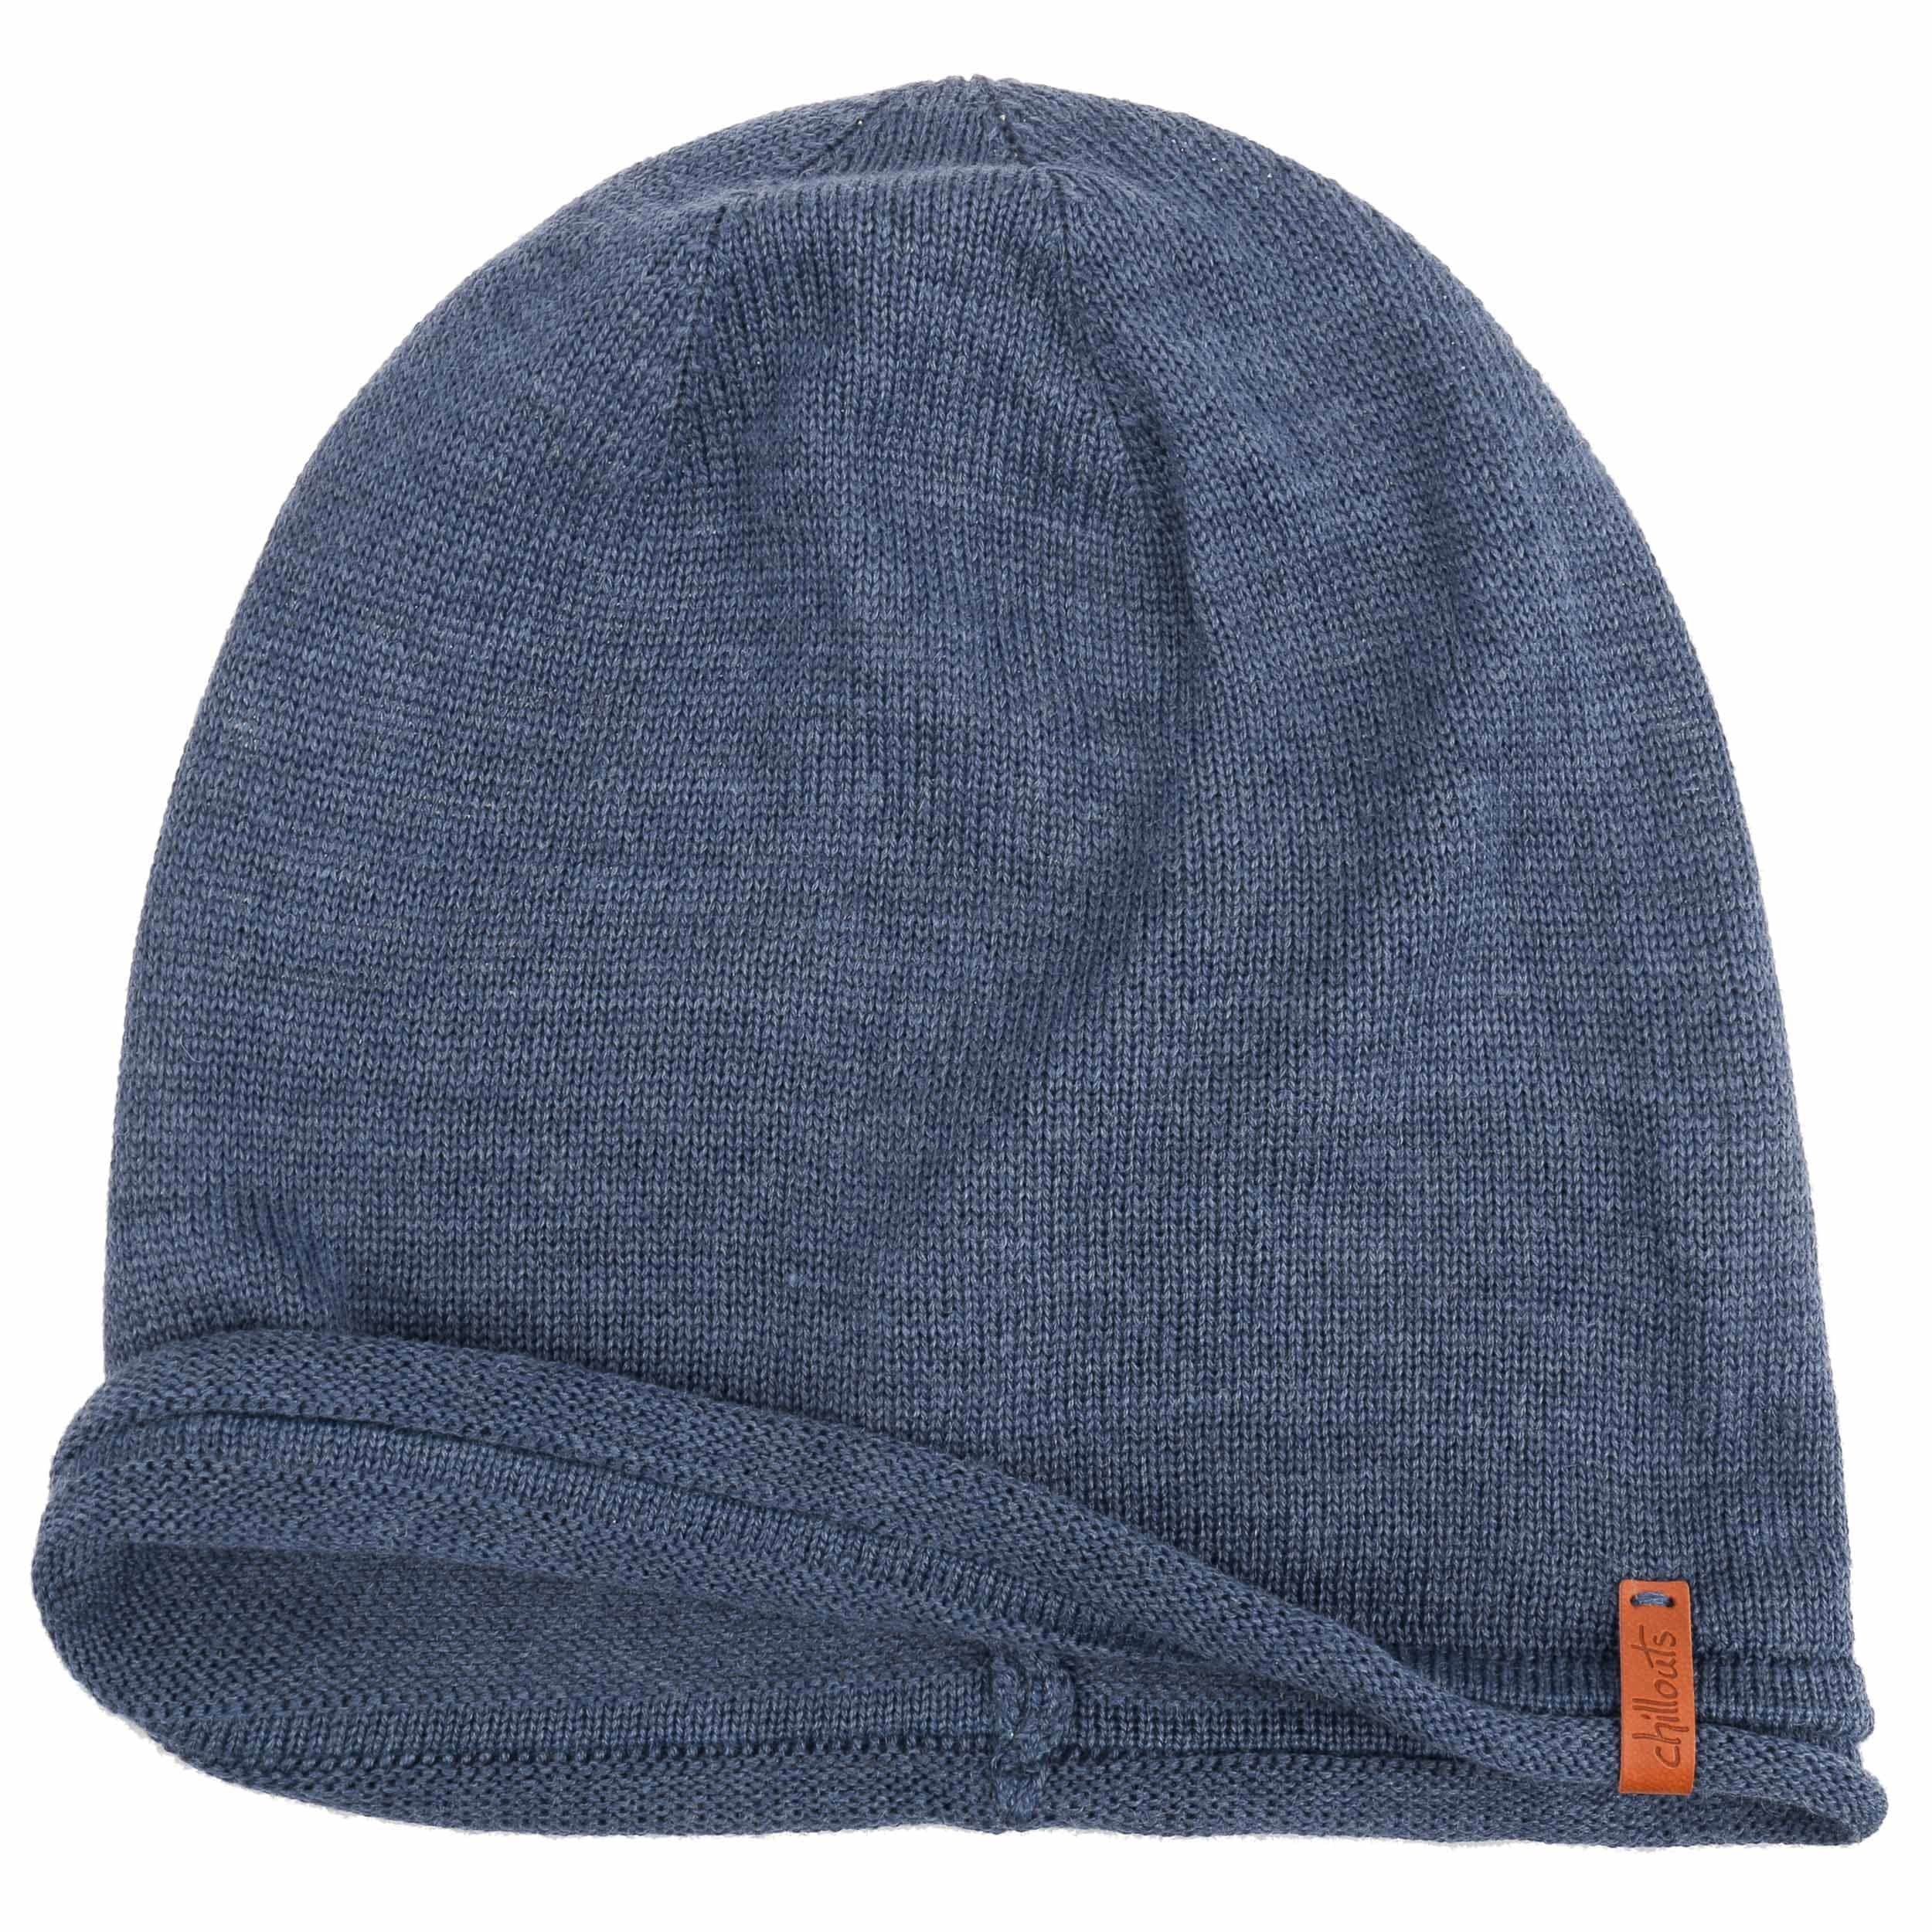 ... Berretto Beanie Leicester by Chillouts - blu 1 ... f9229c57730a